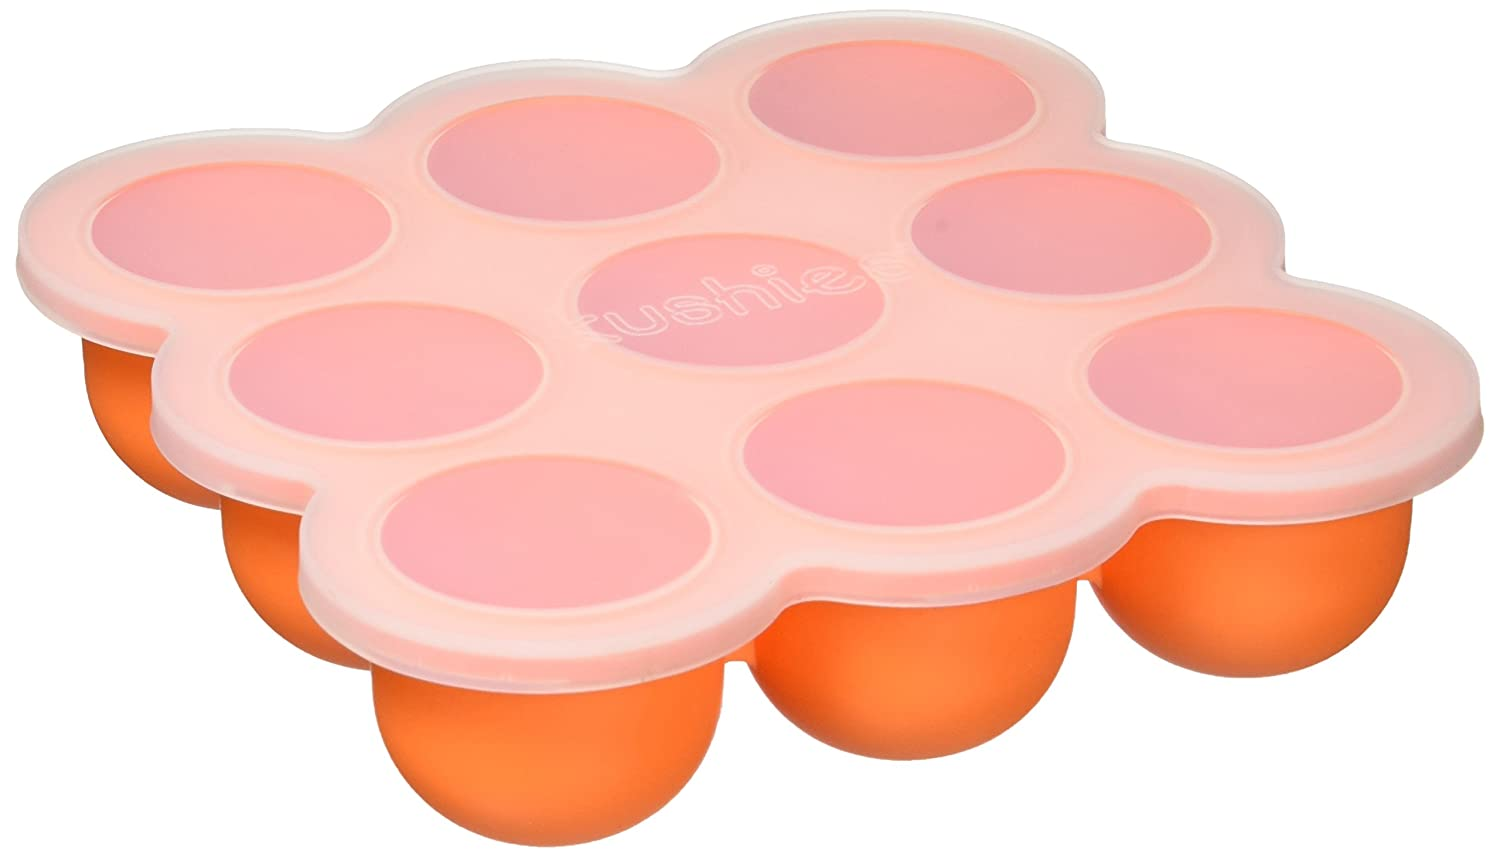 Kushies SILITRAY Silicone Baby Food Storage Container Freezer Tray, Orange Carrot Kushies Baby F101-33